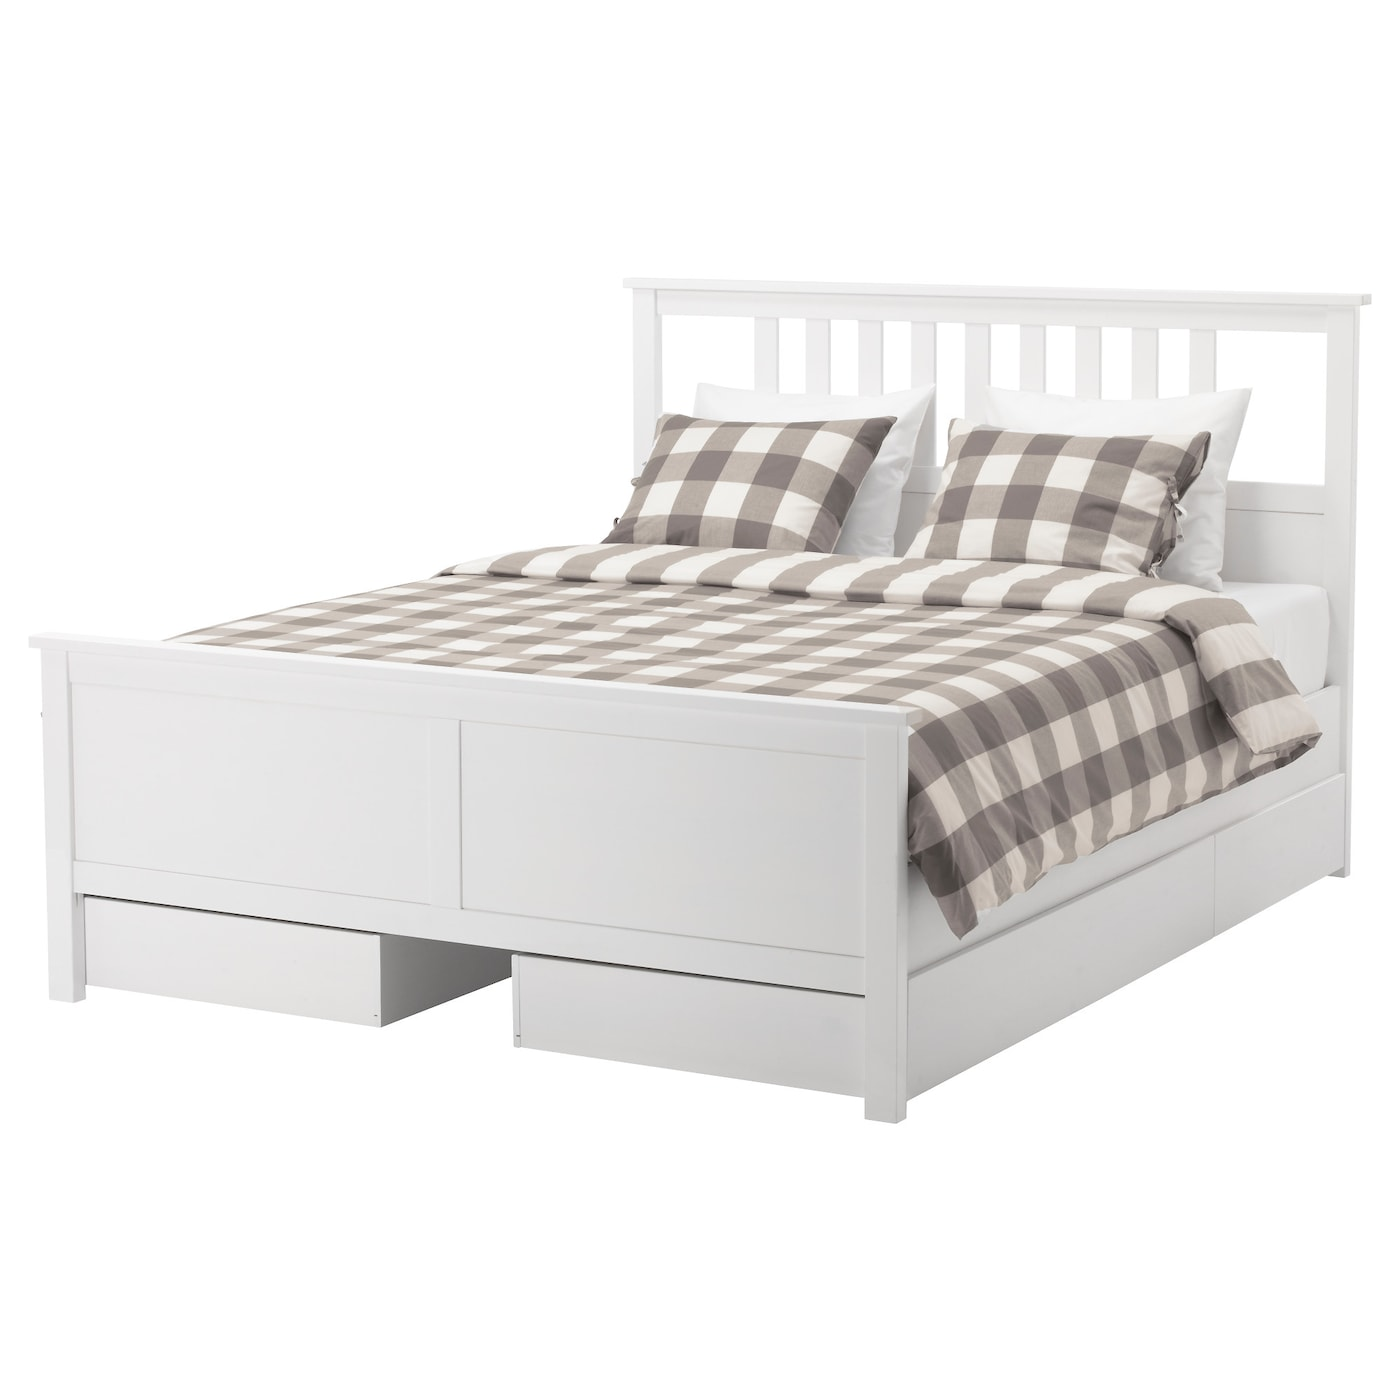 Hemnes bed frame with 4 storage boxes white stain lur y standard double ikea - Lit king size 200x200 ...